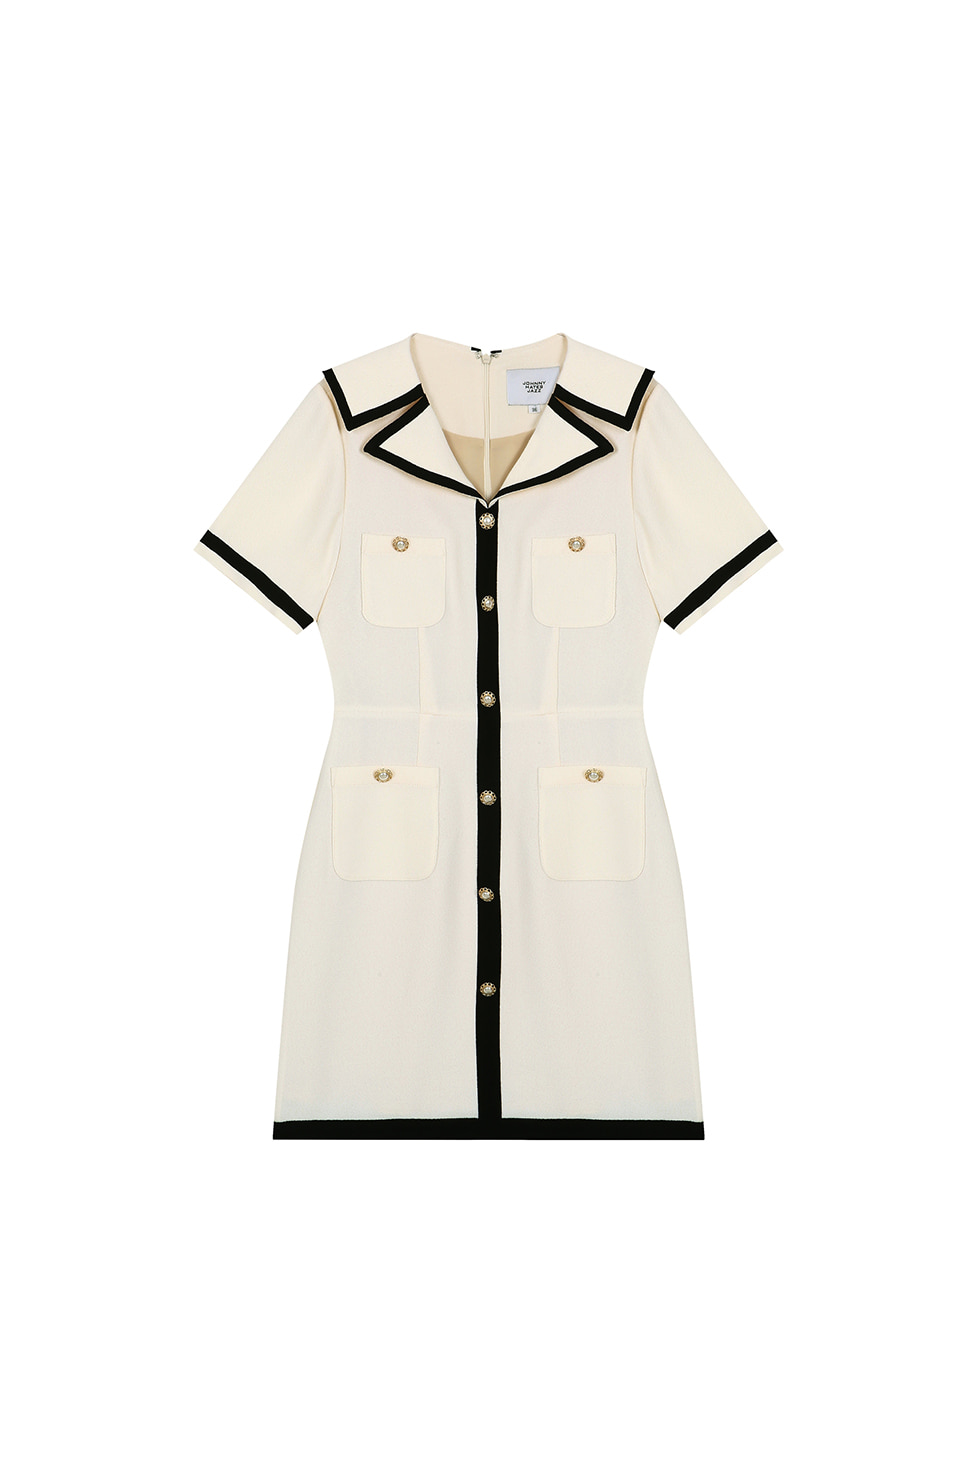 [6월 10일 예약배송]POCKET MINI DRESS - IVORY